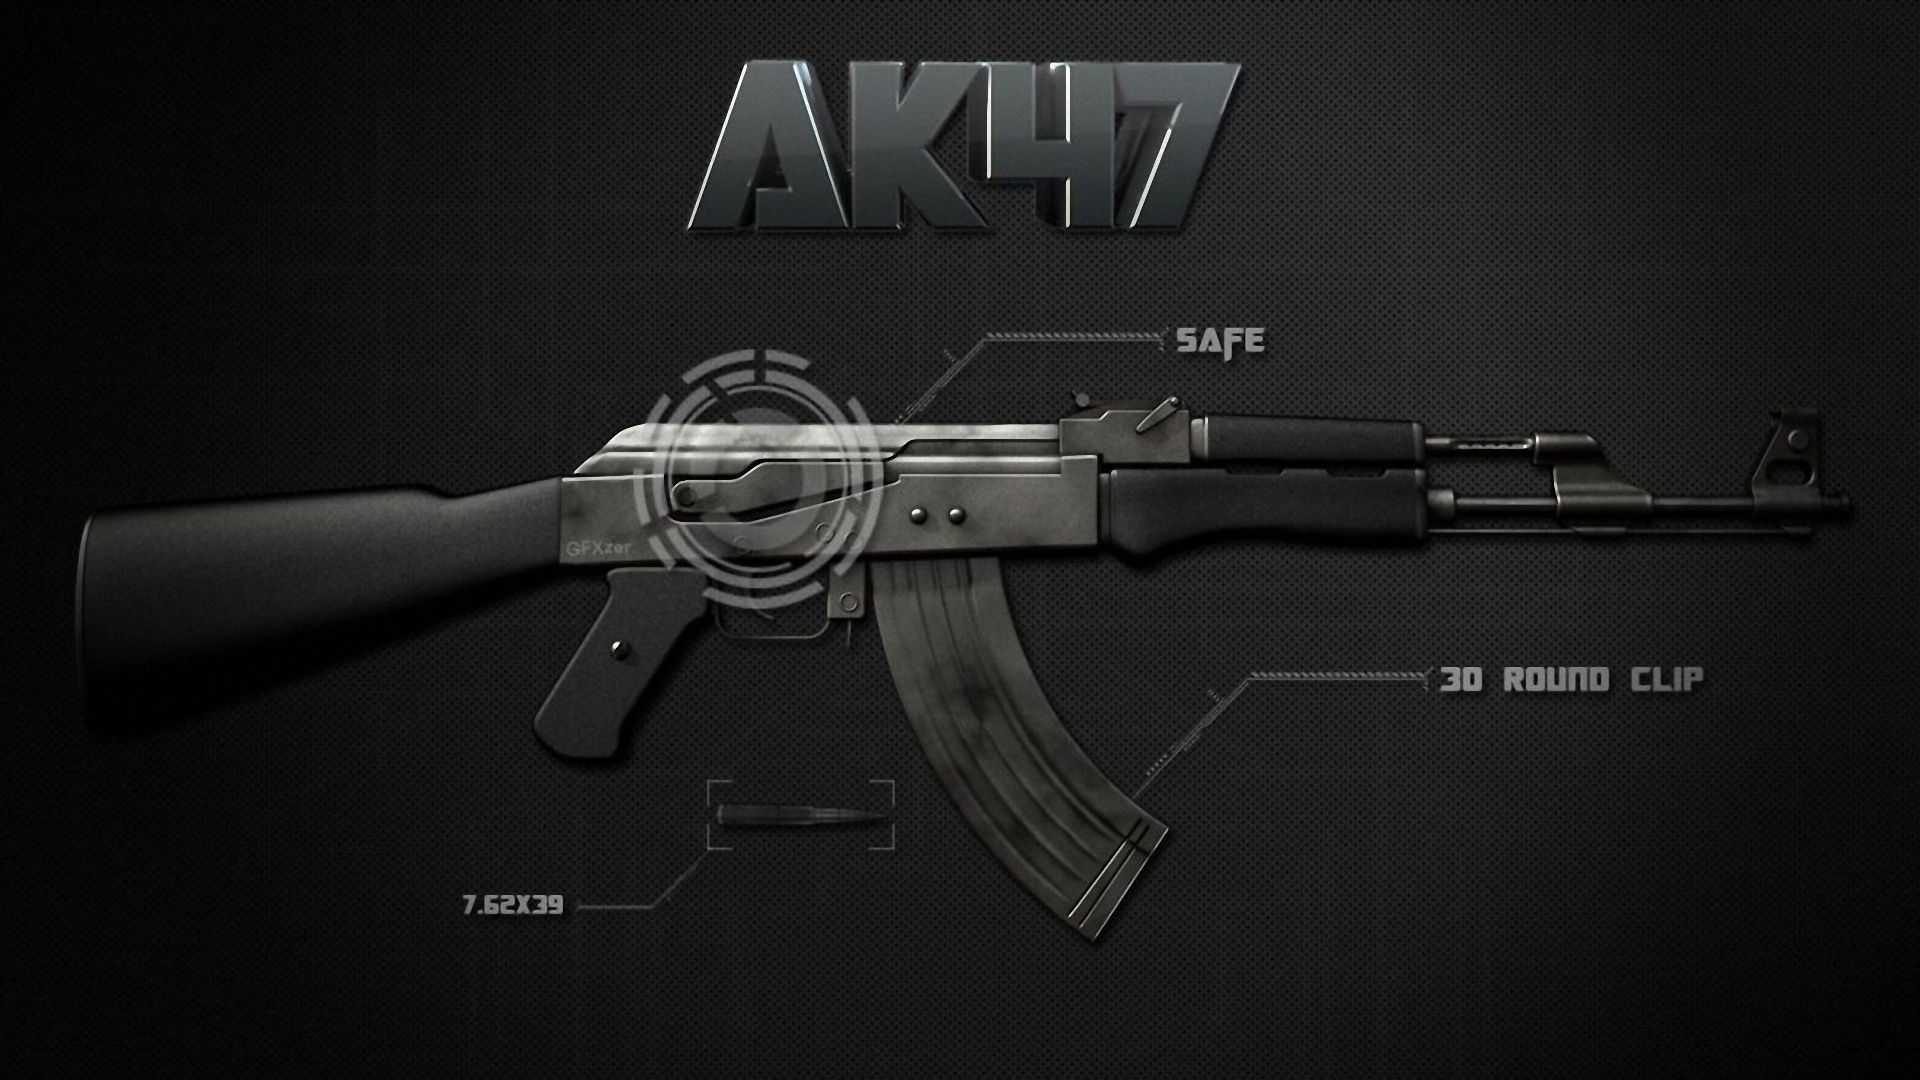 weapons Guns ak-47 Rifles ak 47 HD Wallpaper